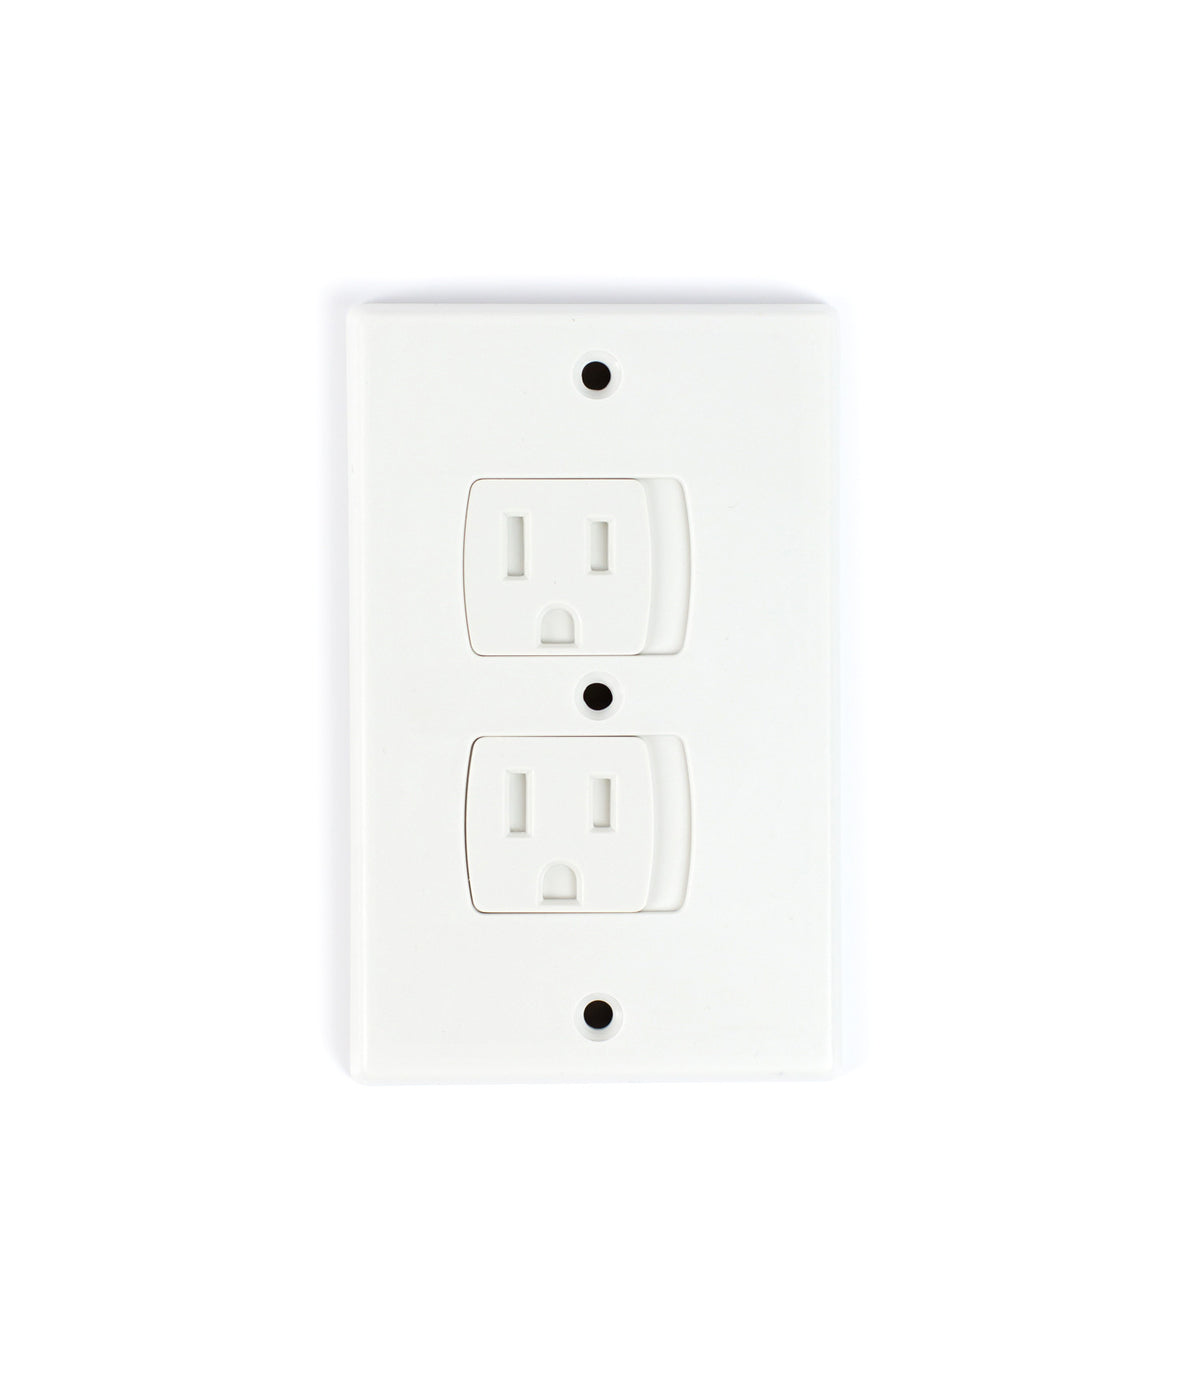 White Electrical Outlet Covers Selfclosing Electrical Outlet Covers  4 Pack White  Jessa Leona